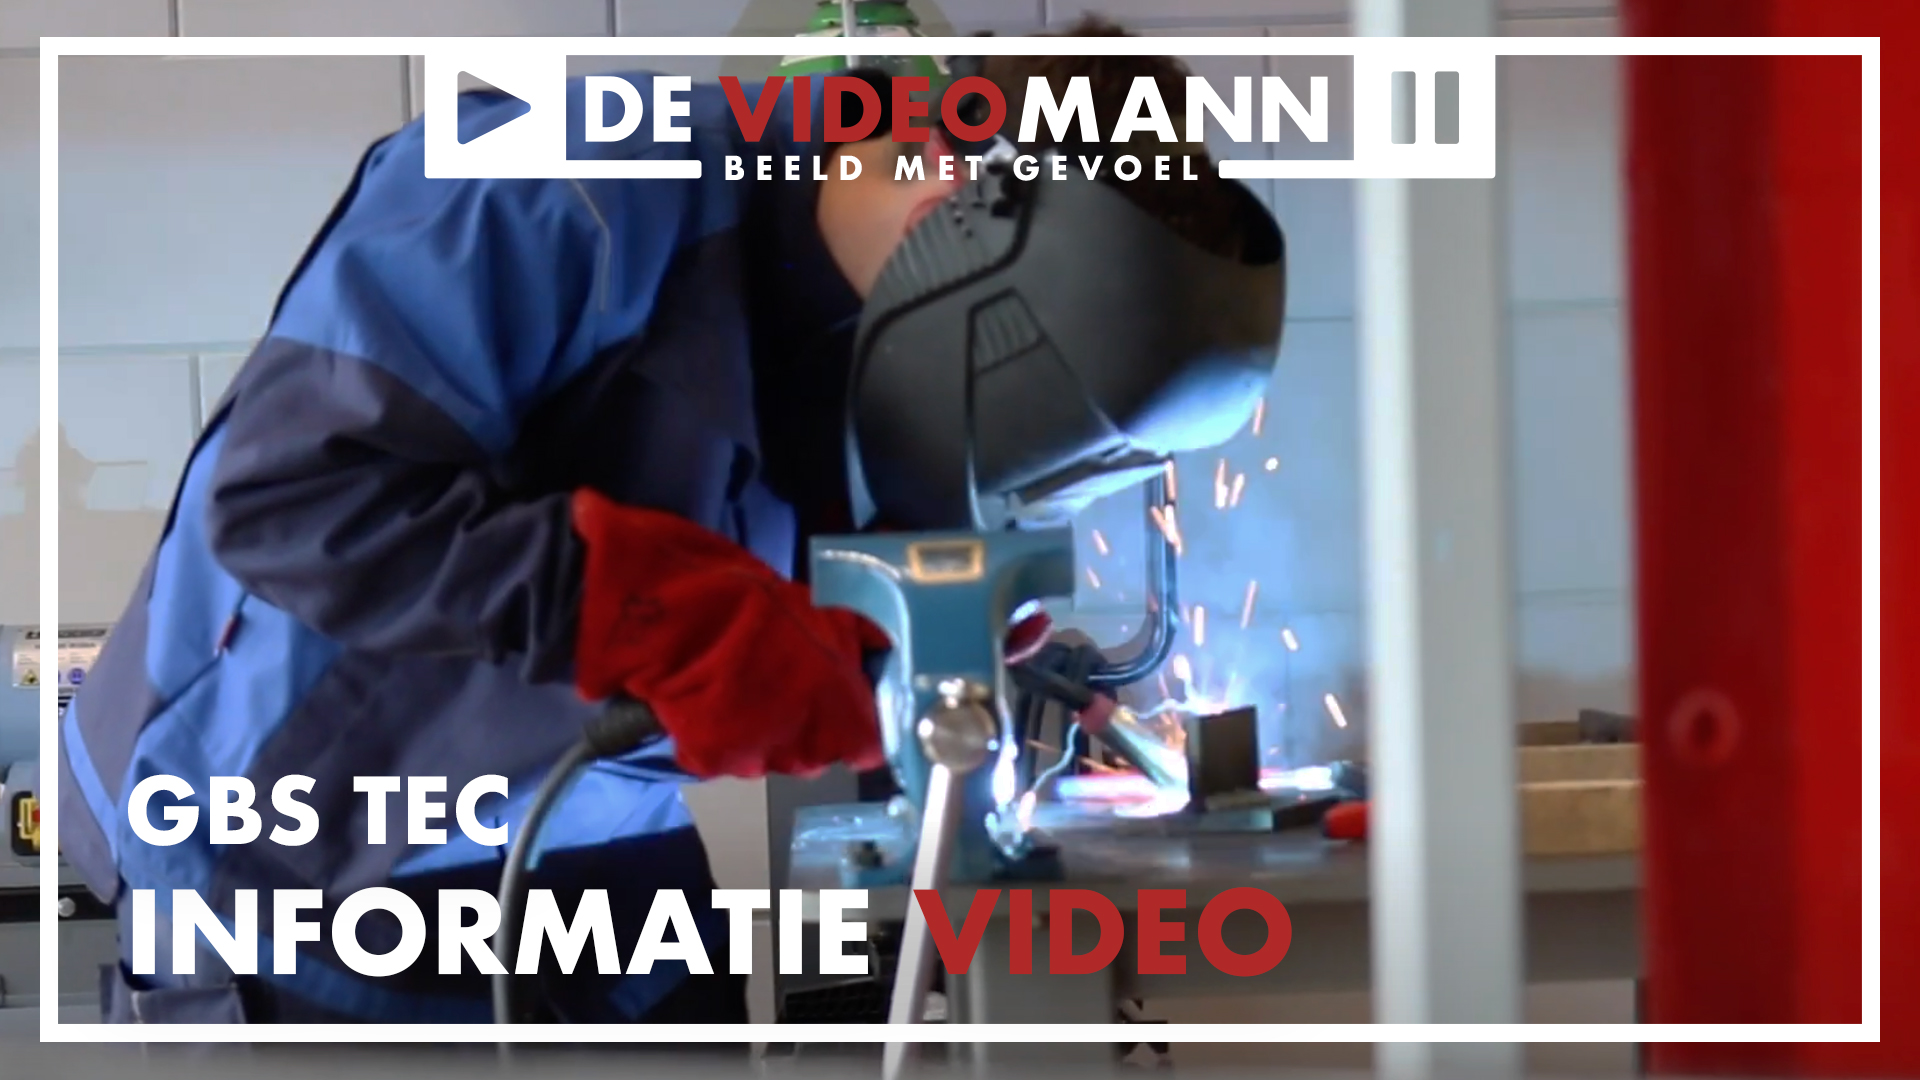 GBS TEC – Informatie Video